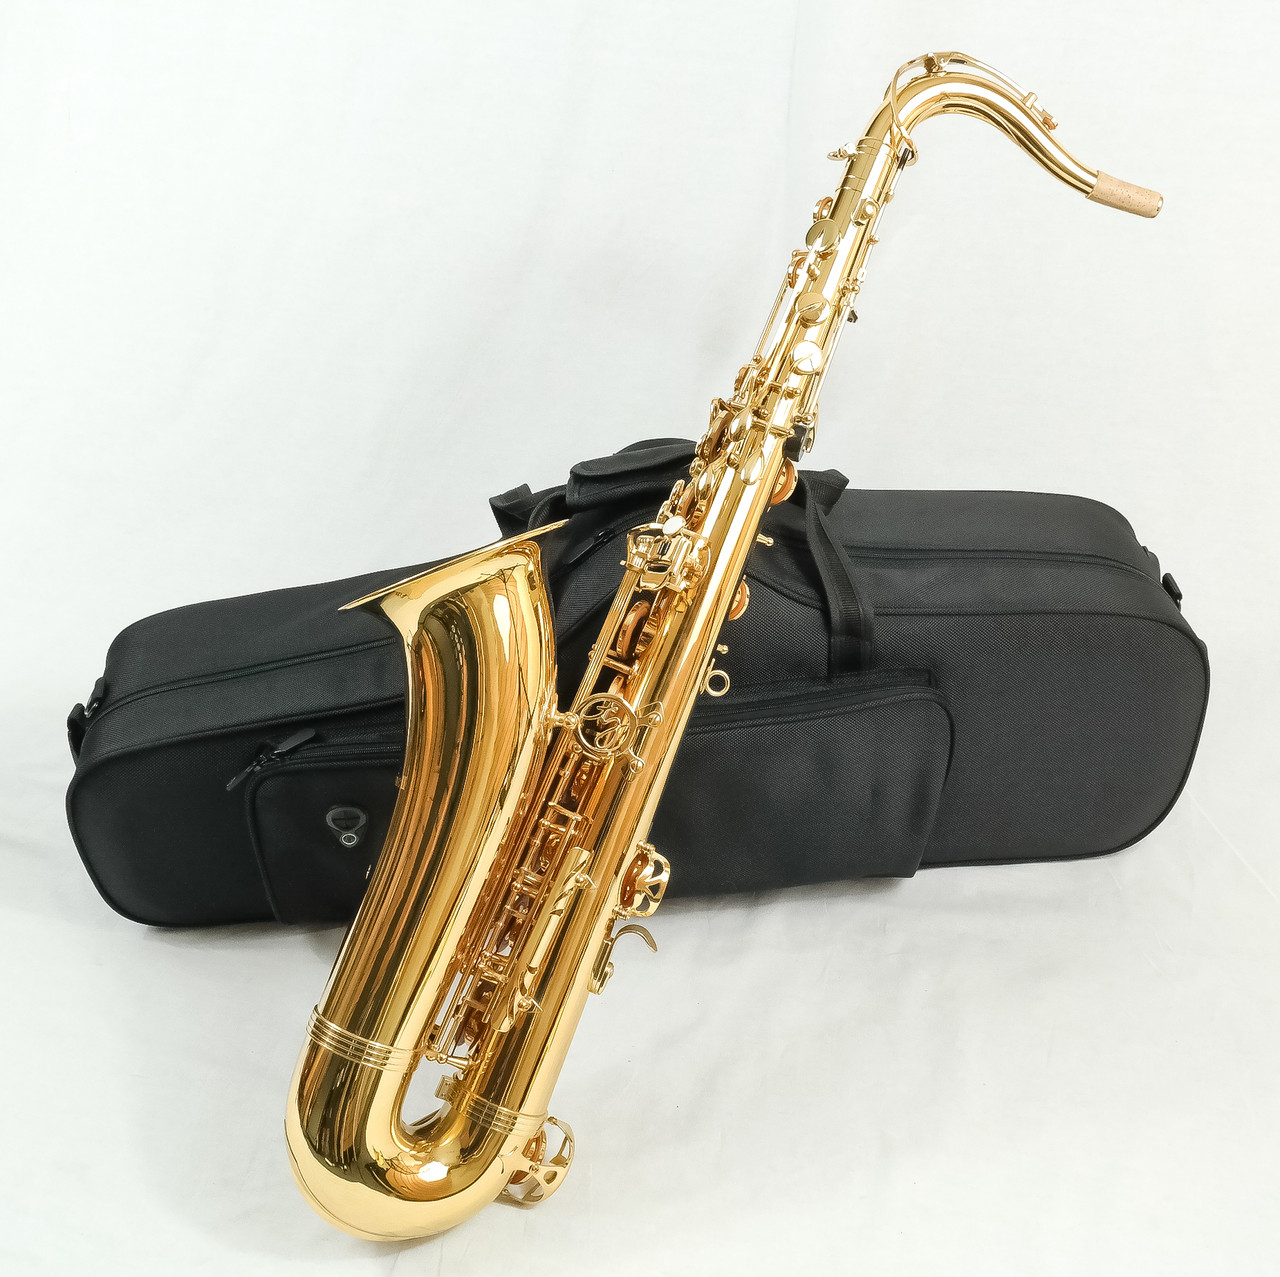 trevor james horn classic ii tenor saxophone for sale